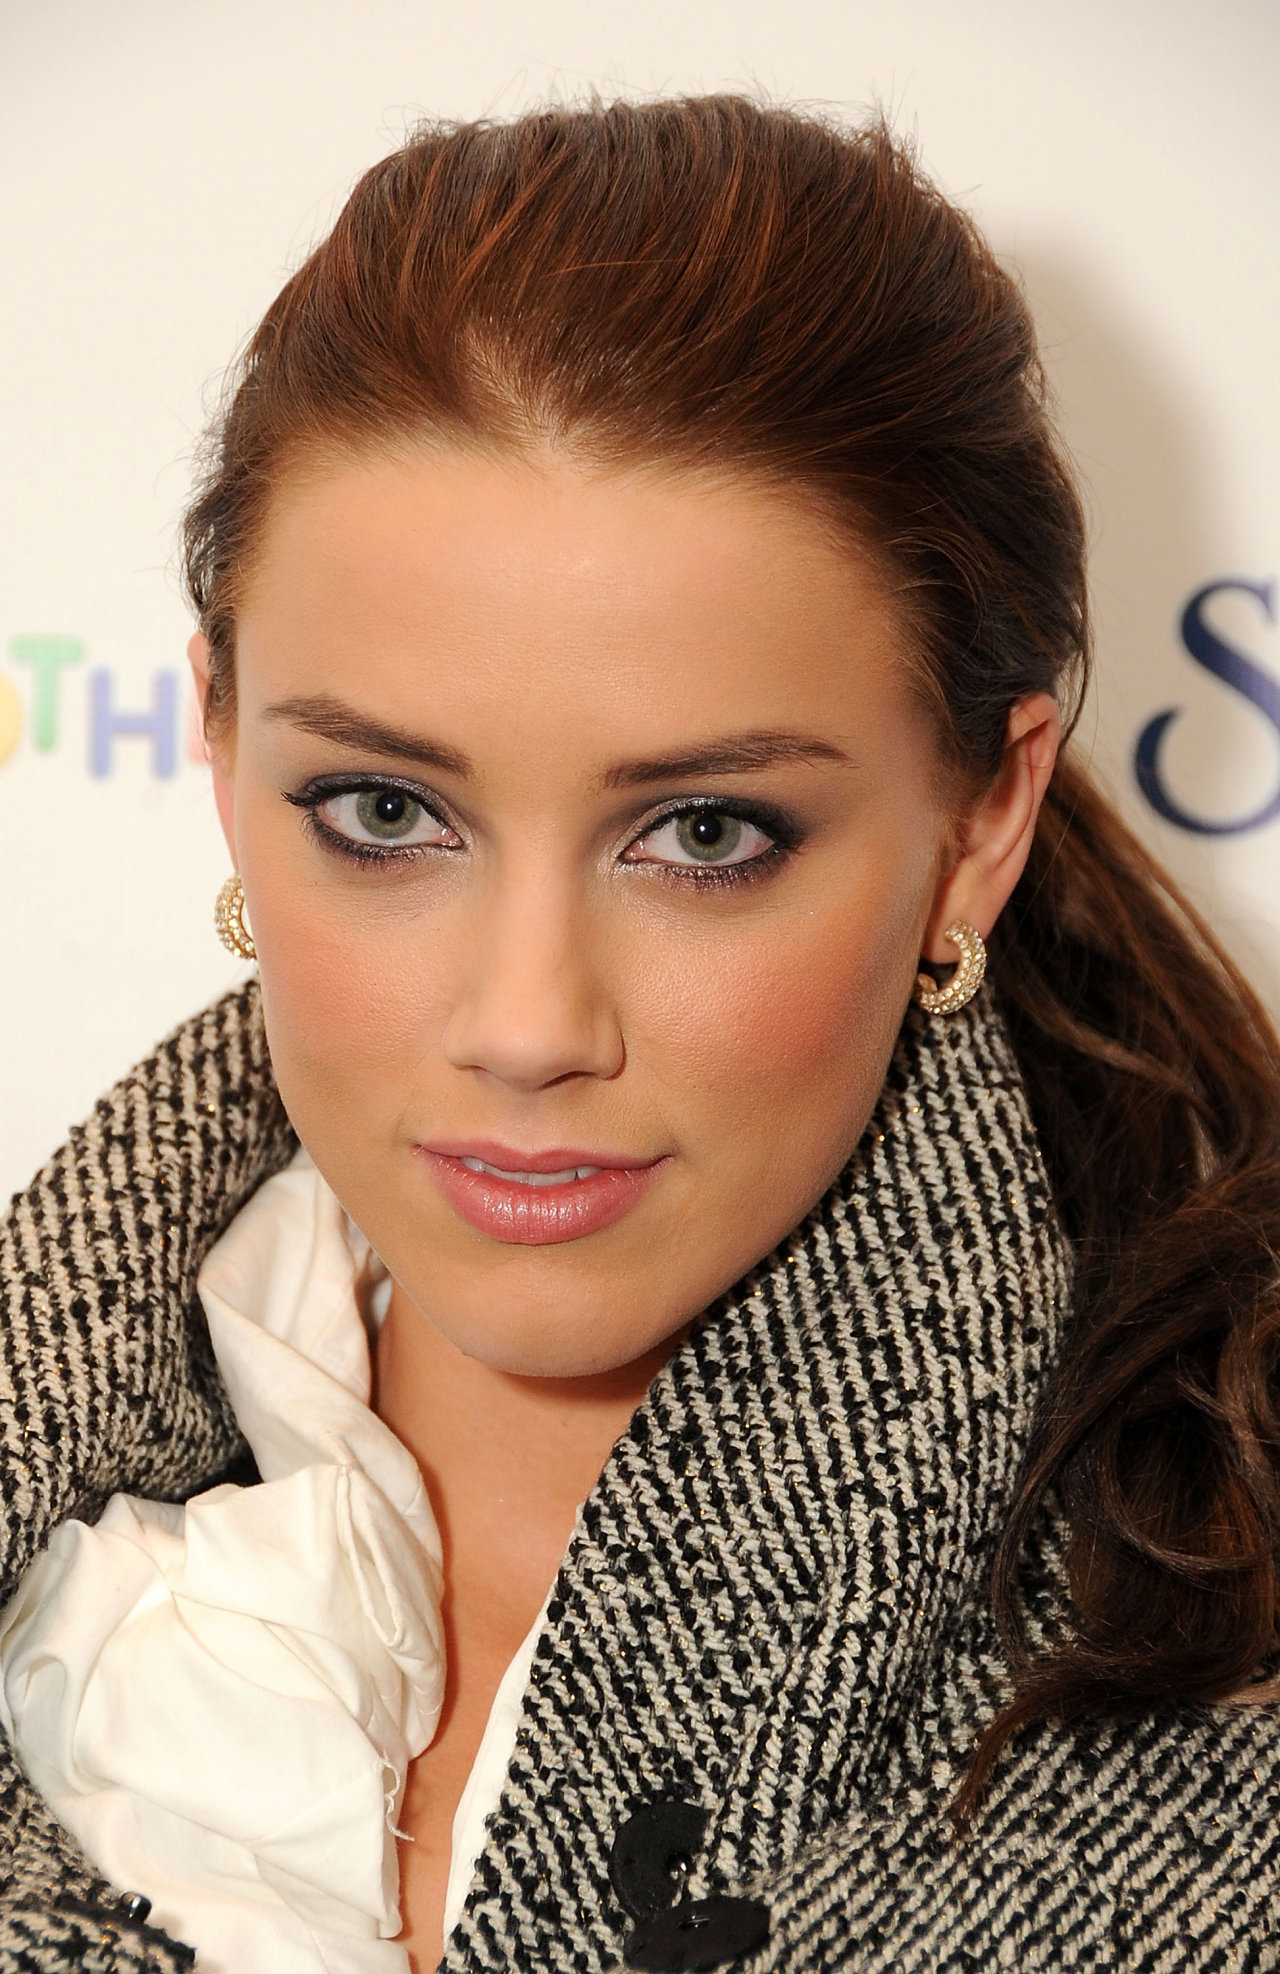 Amber Heard - Images Gallery